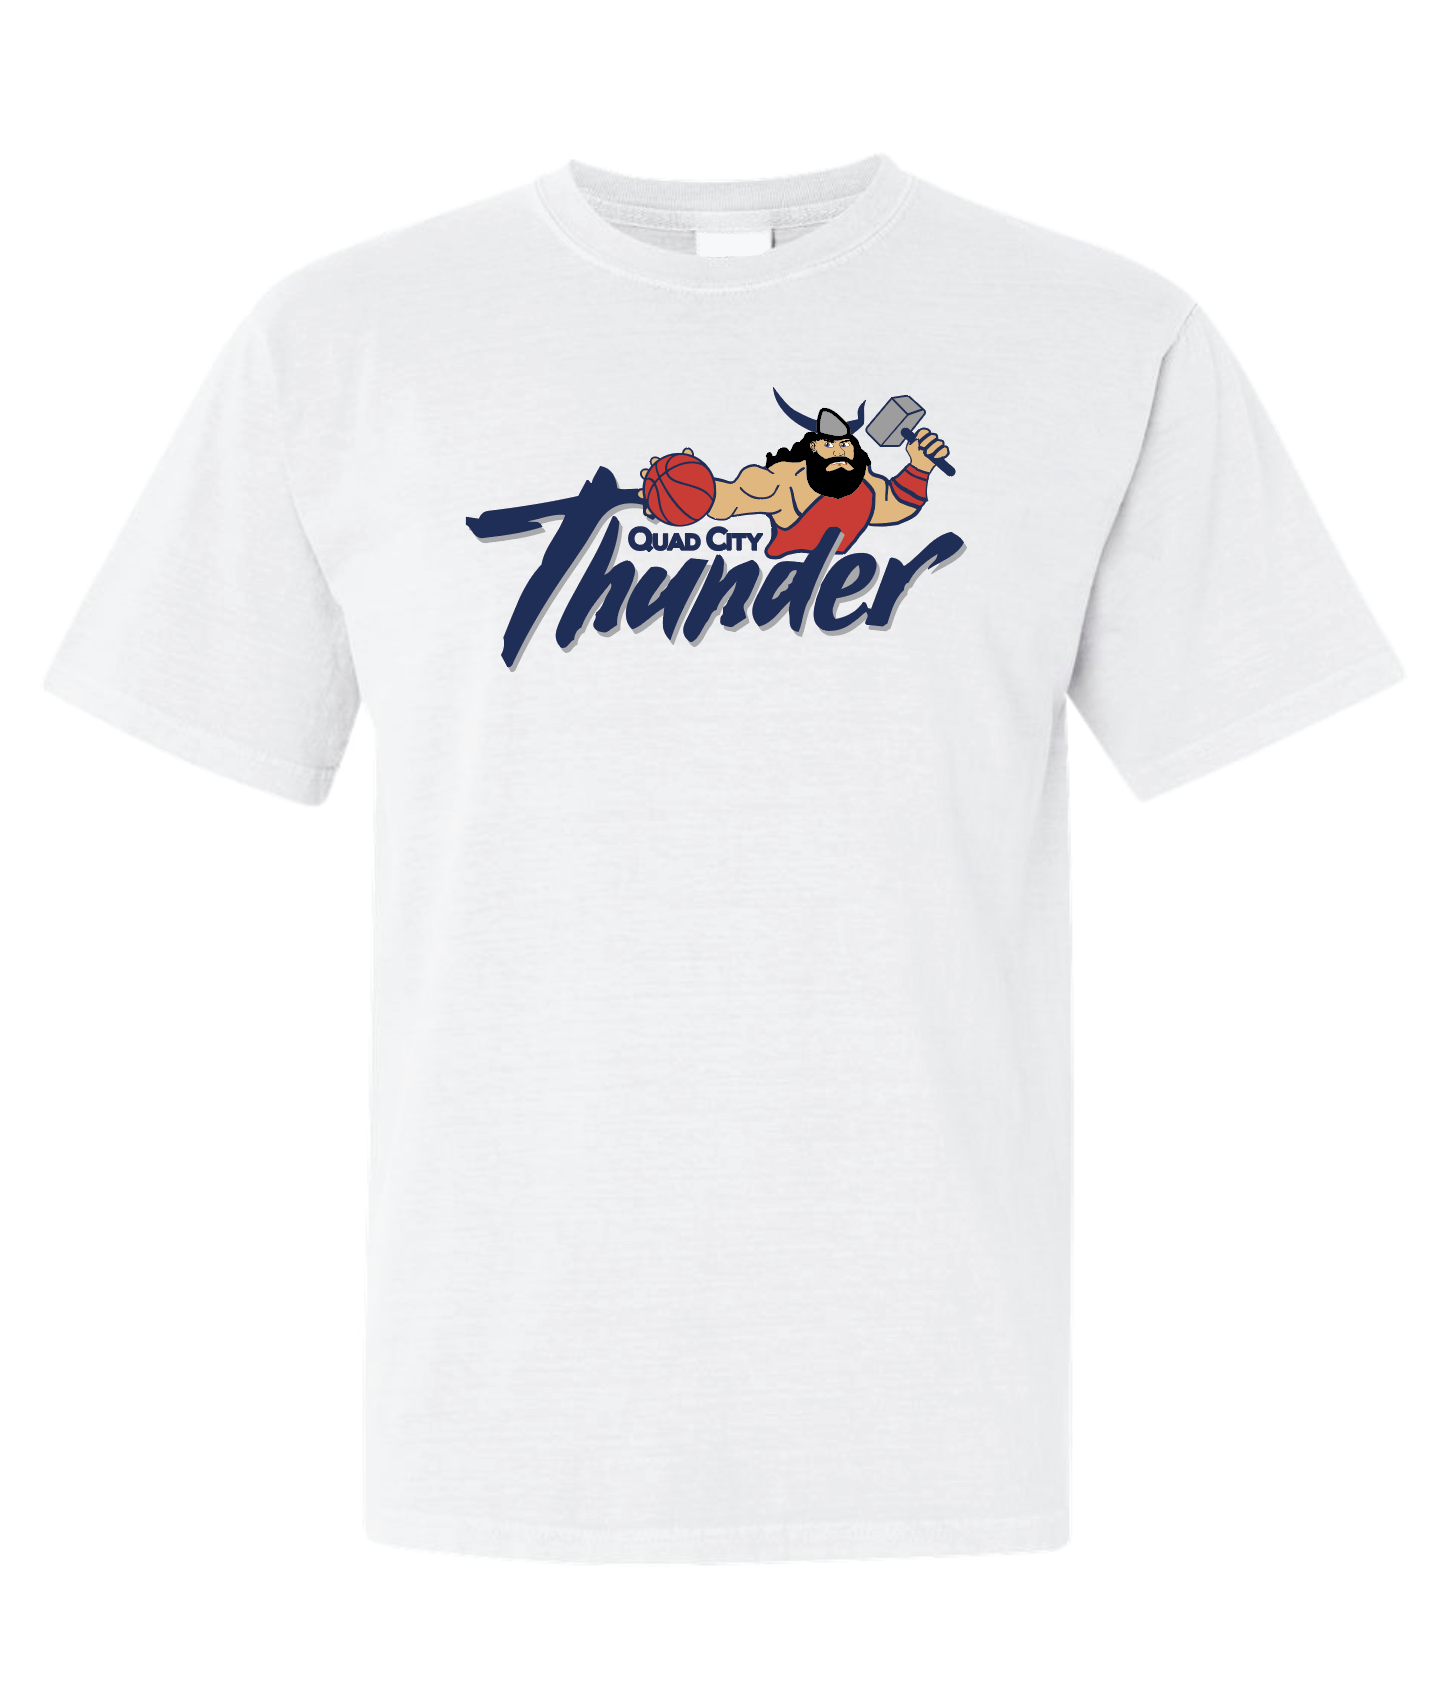 Image of QC Thunder Vintage Tee